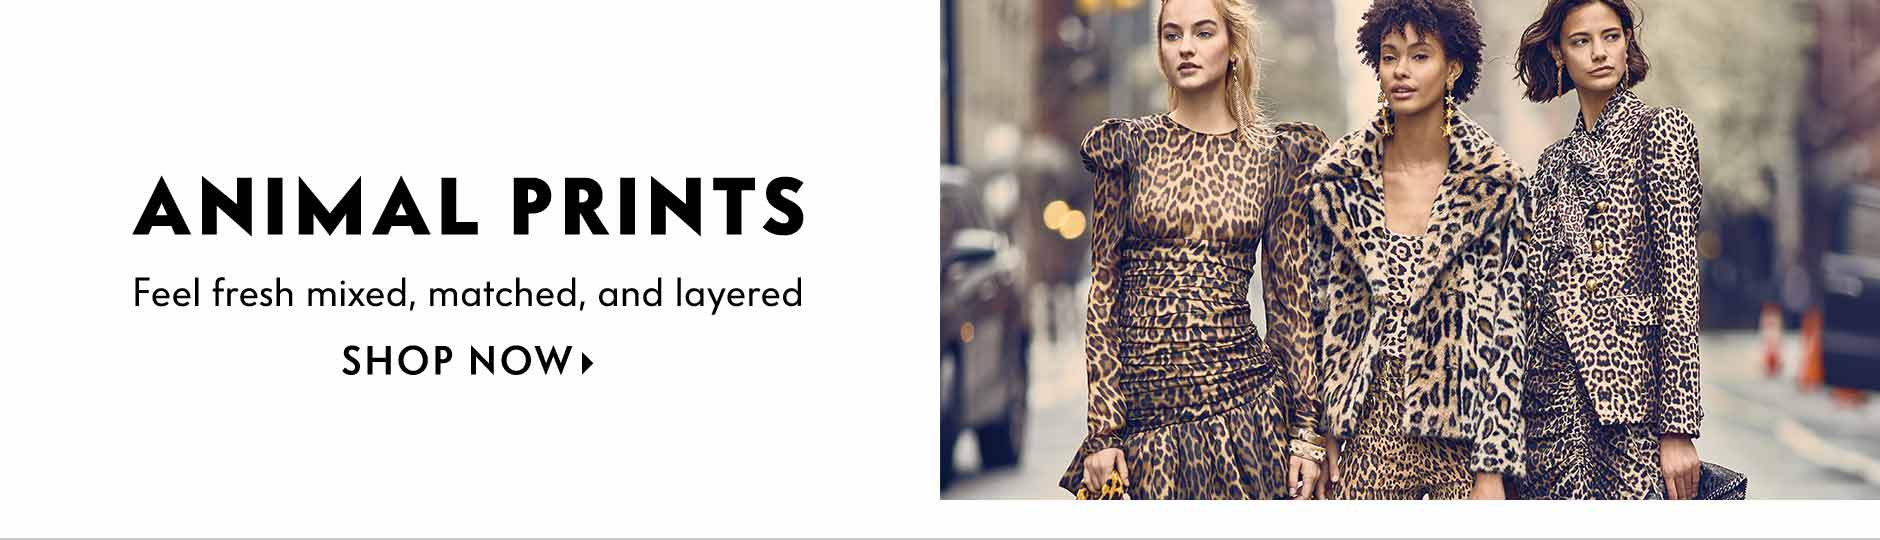 Animal Prints - Feel fresh mixed, matched, and layered